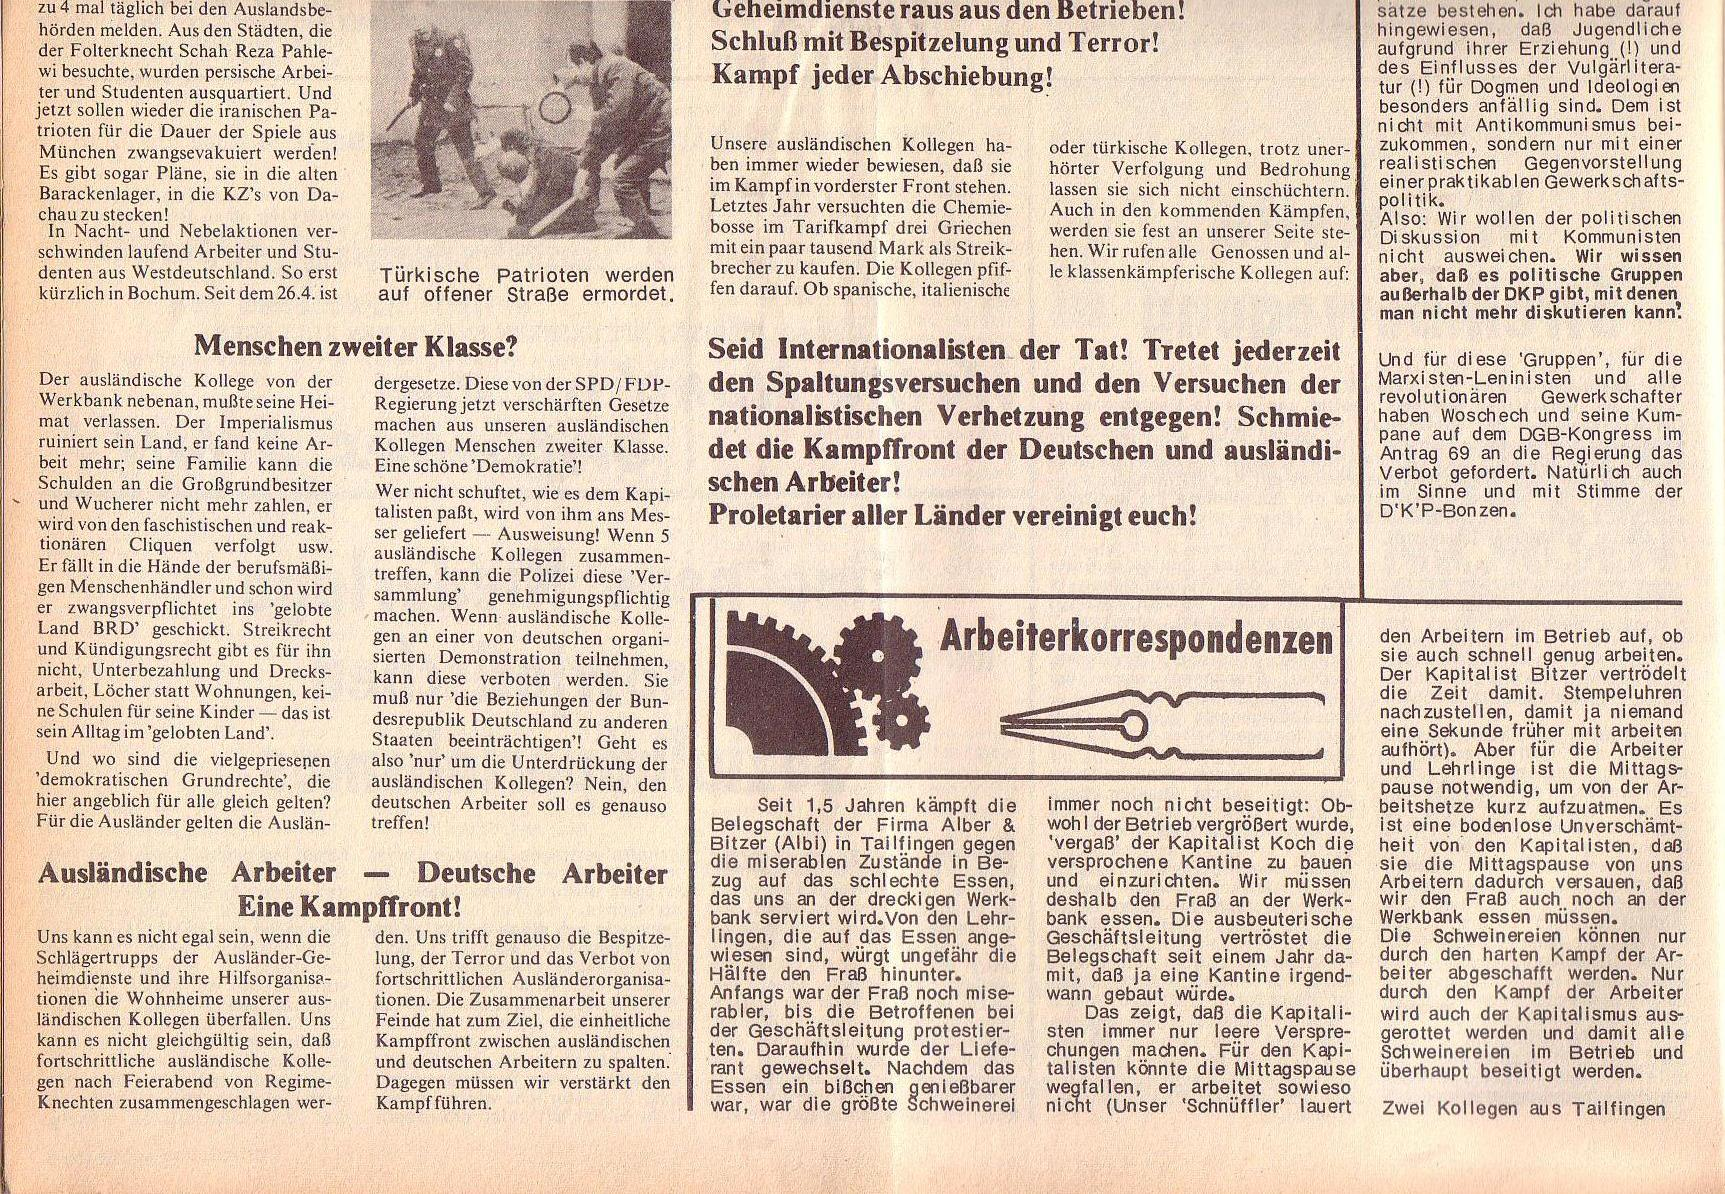 Roter Morgen, 6. Jg., 14. August 1972, Nr. 16, Seite 4b